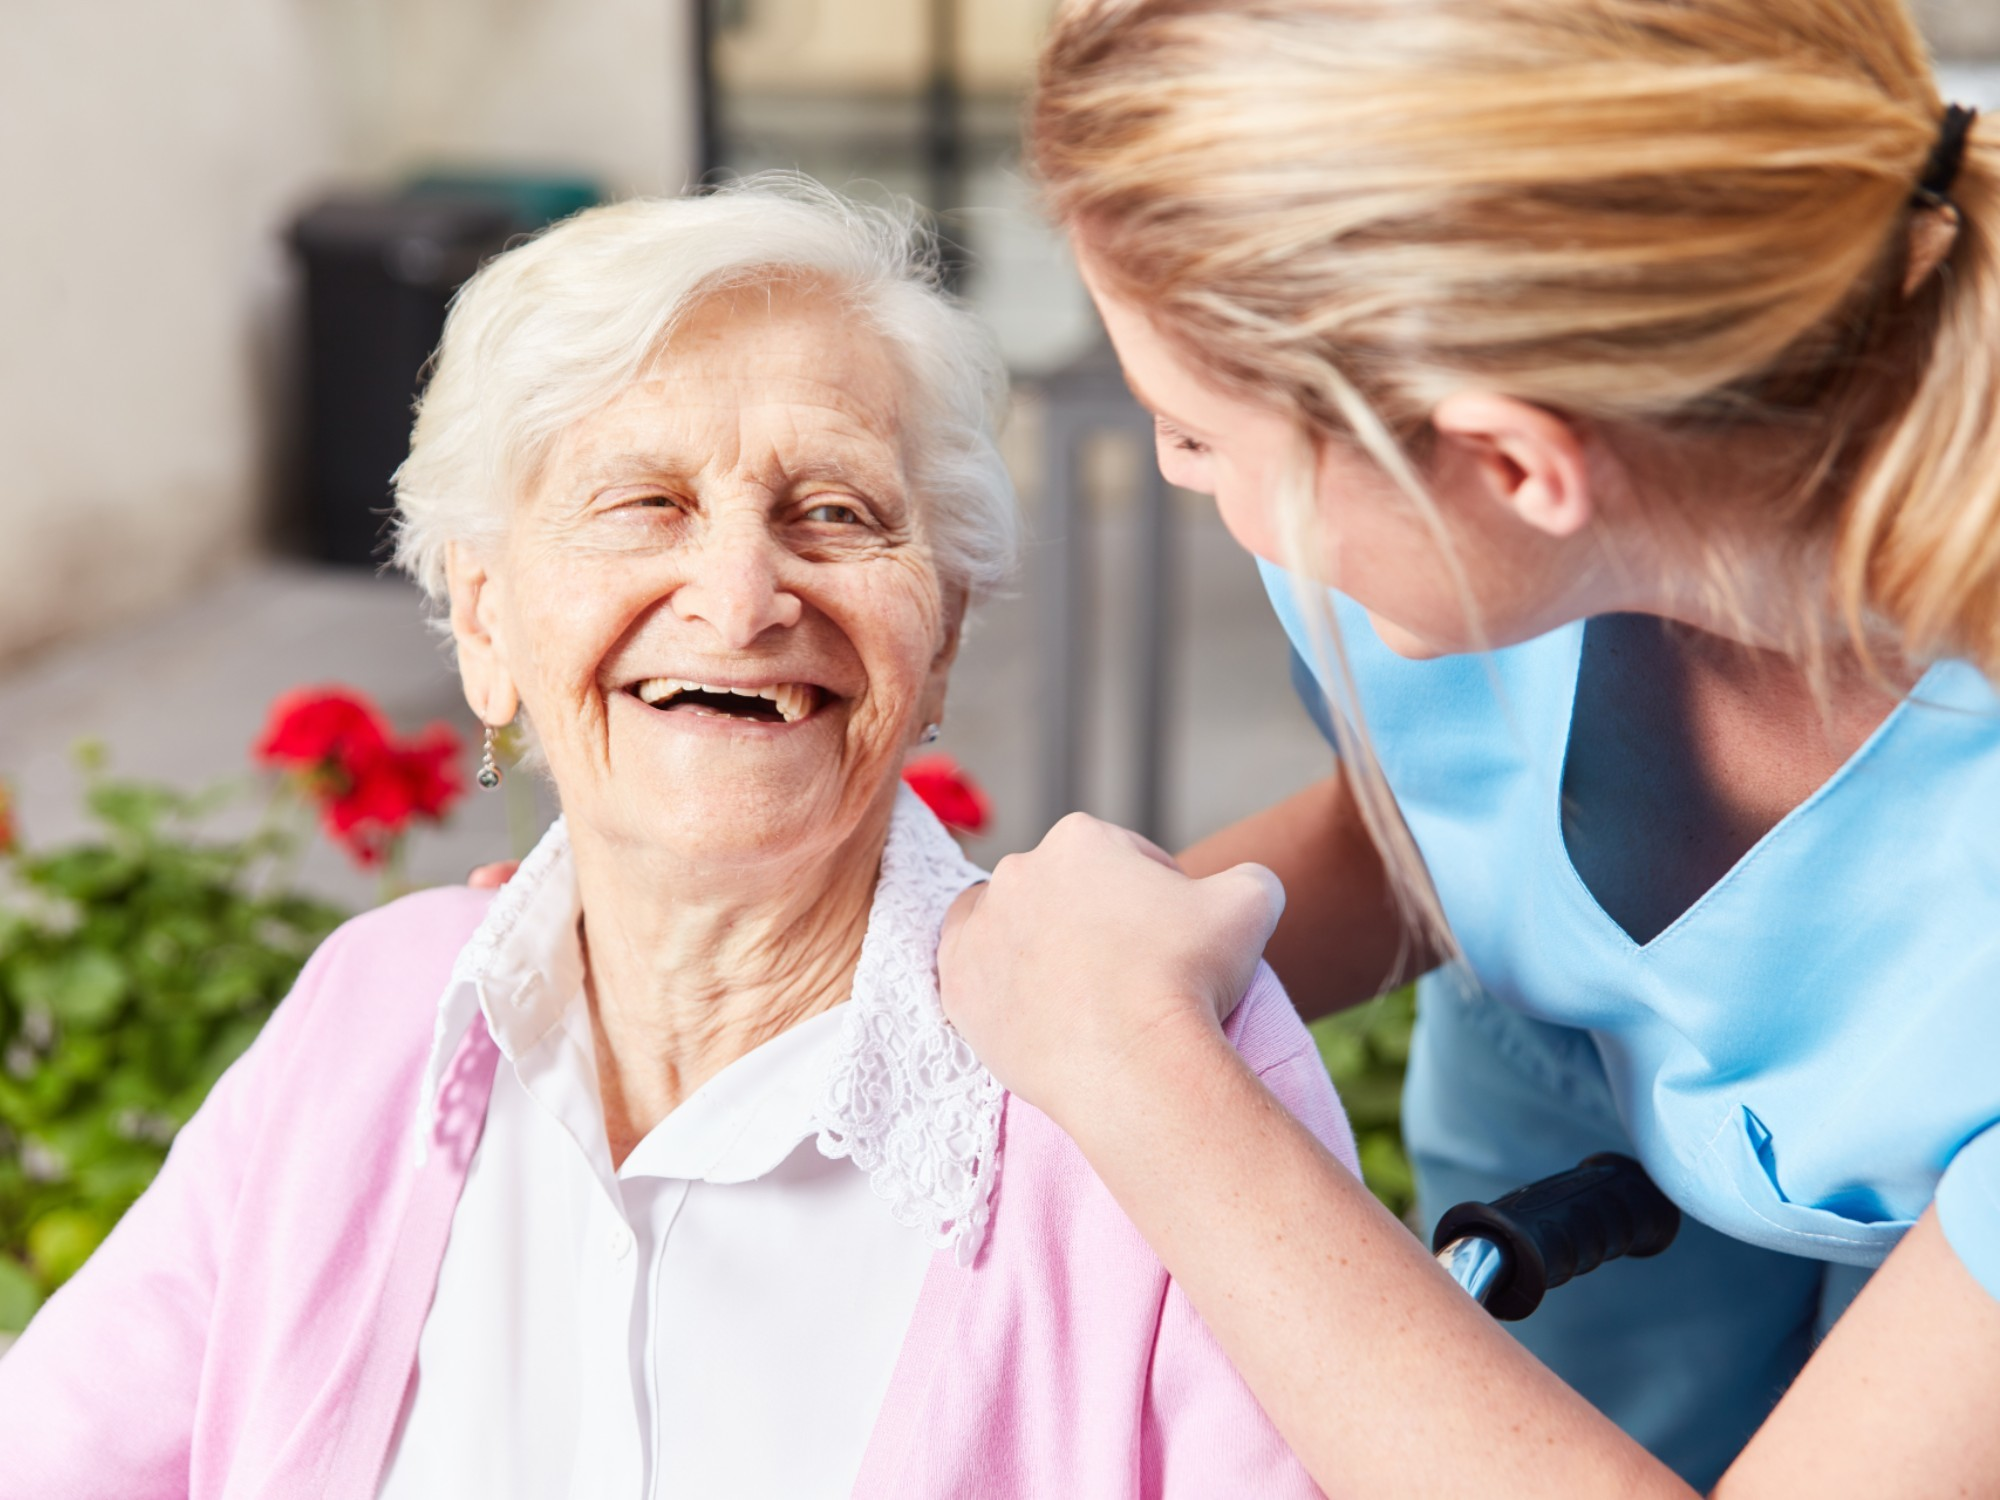 Older women receiving care and happy about it